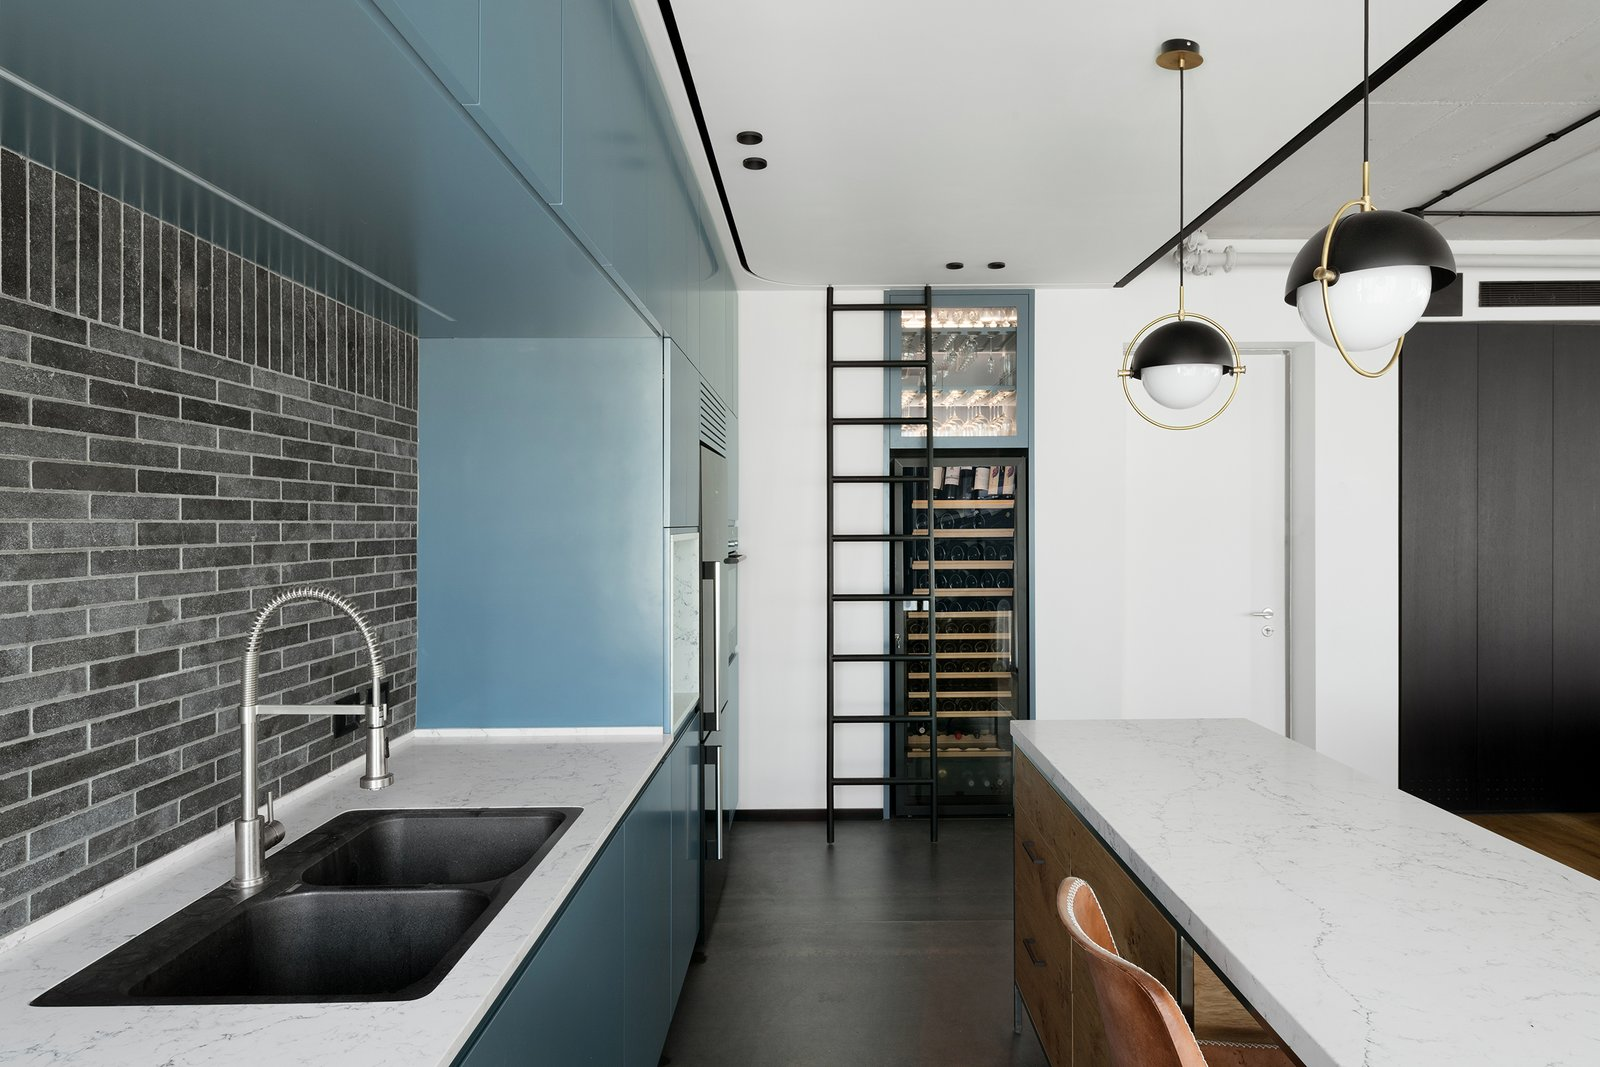 The black and white color scheme uses a cool share of teal as an accent.